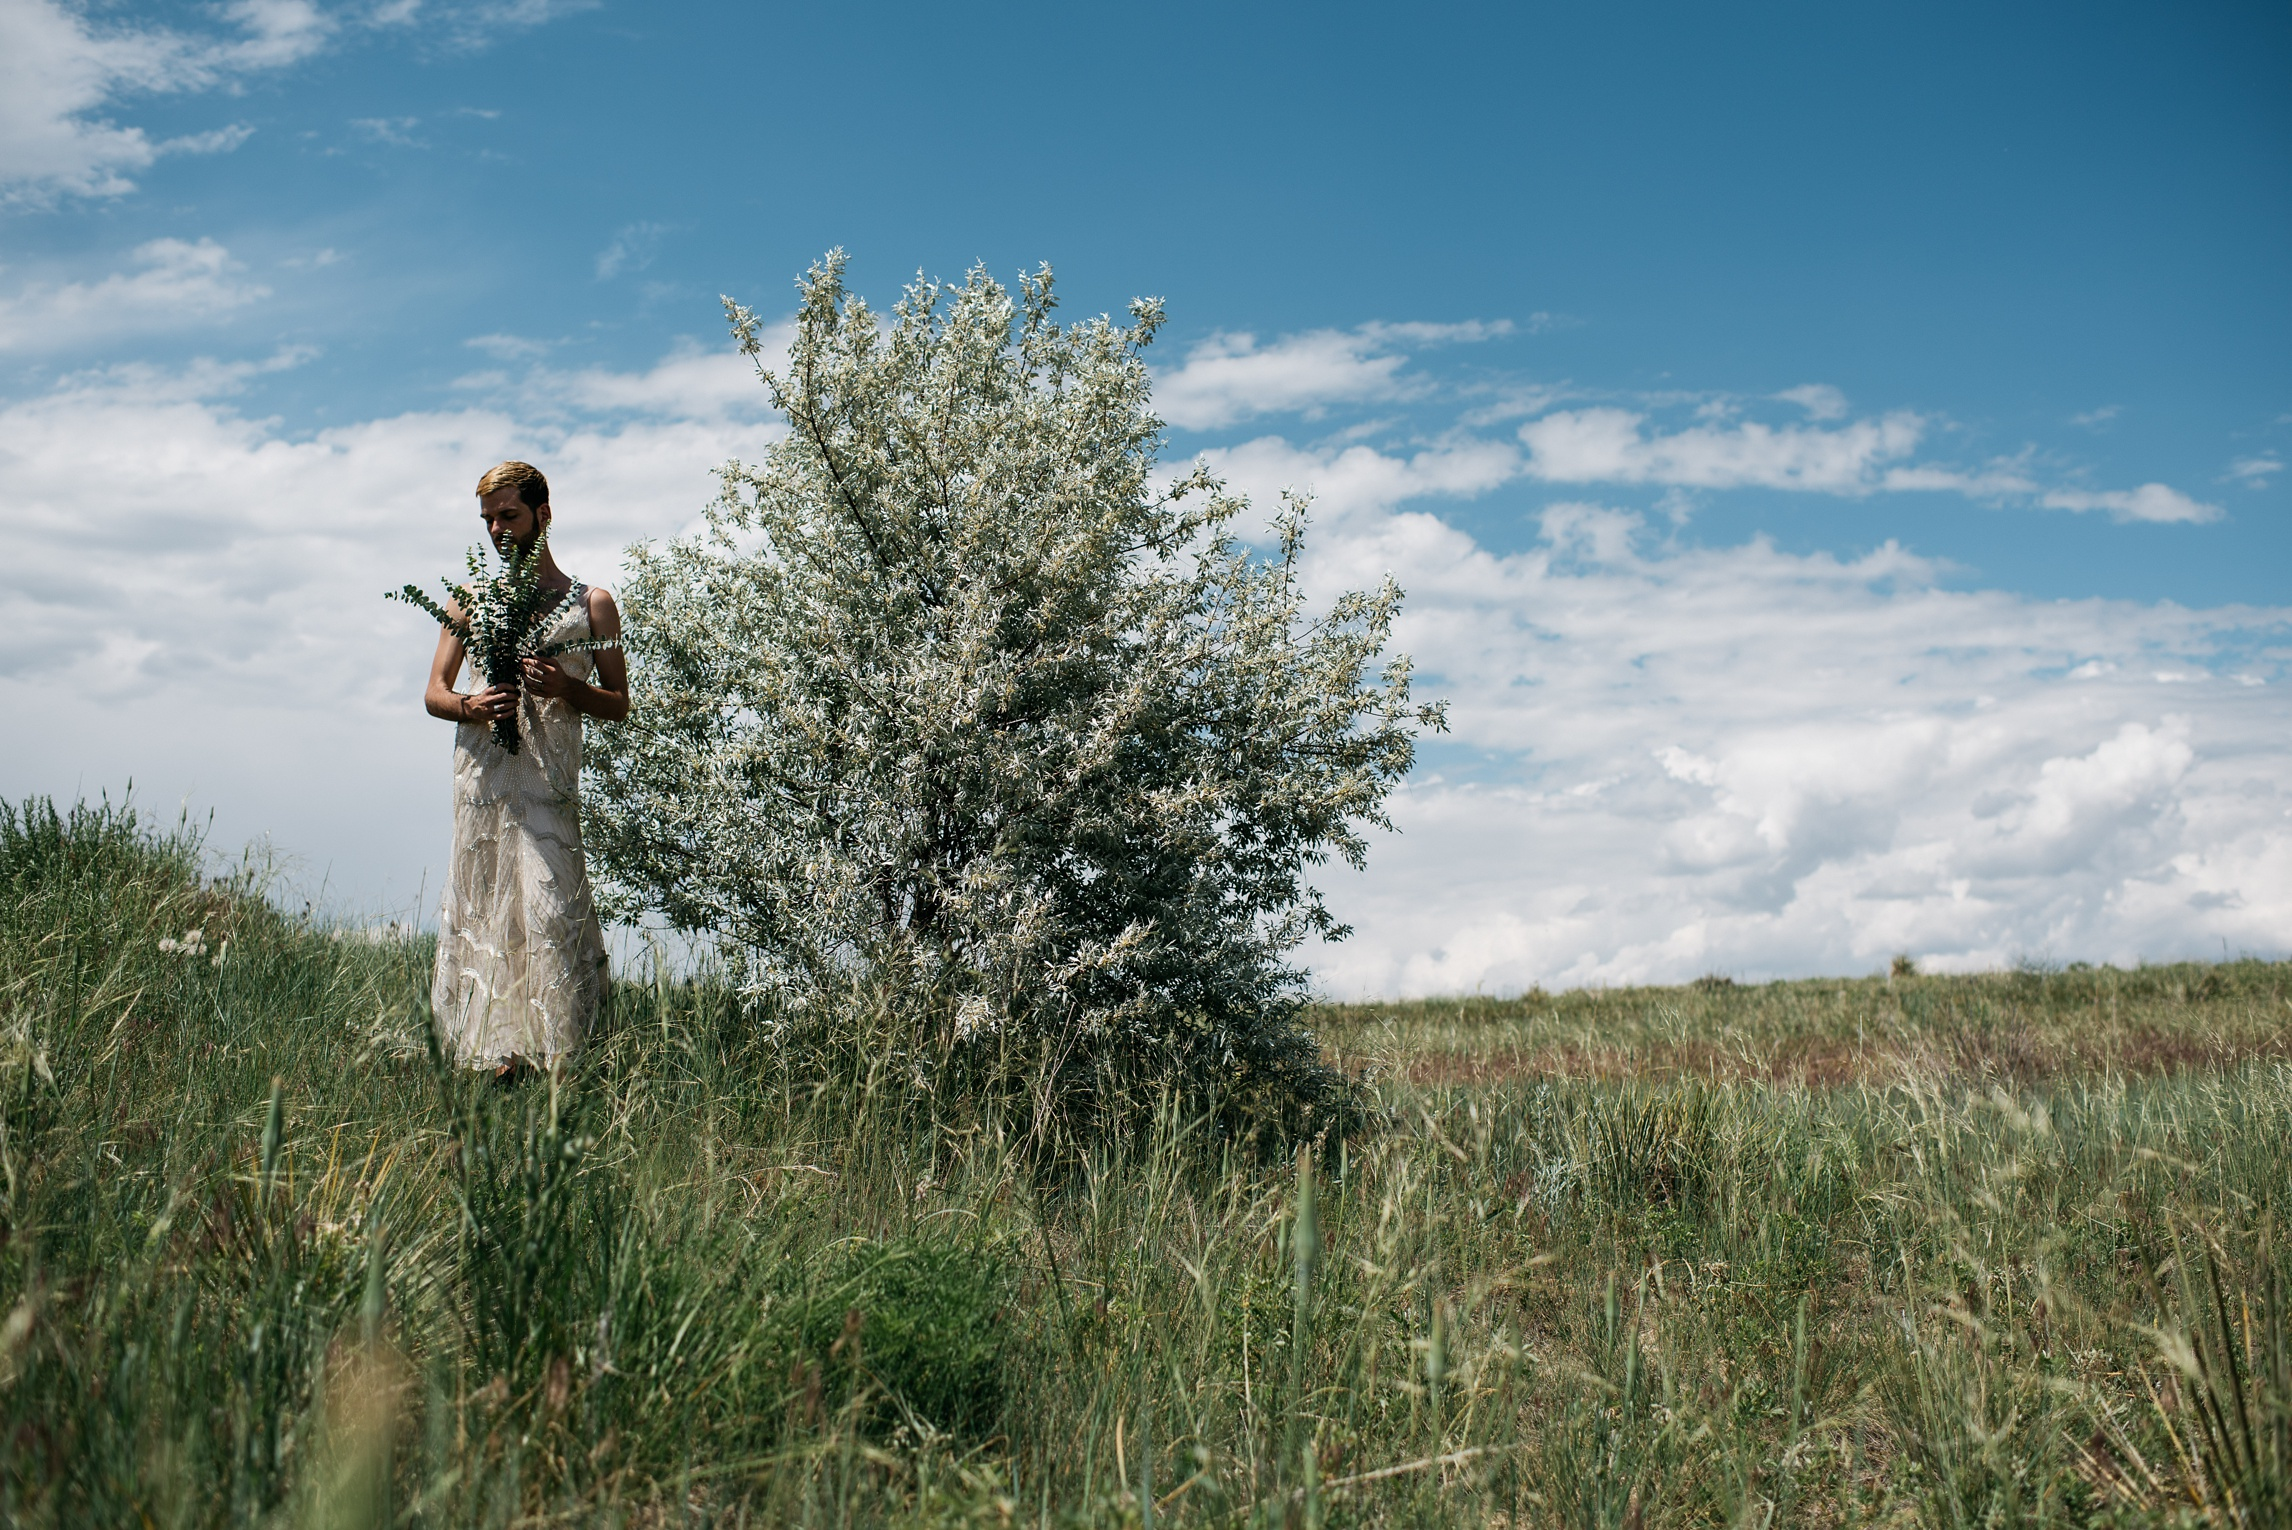 Ryan Page, a scorned bride in a Maggie Sottero wedding dress near an olive tree, holding a eucalyptus bouquet. Photography by Sonja Salzburg of Sonja K Photography.